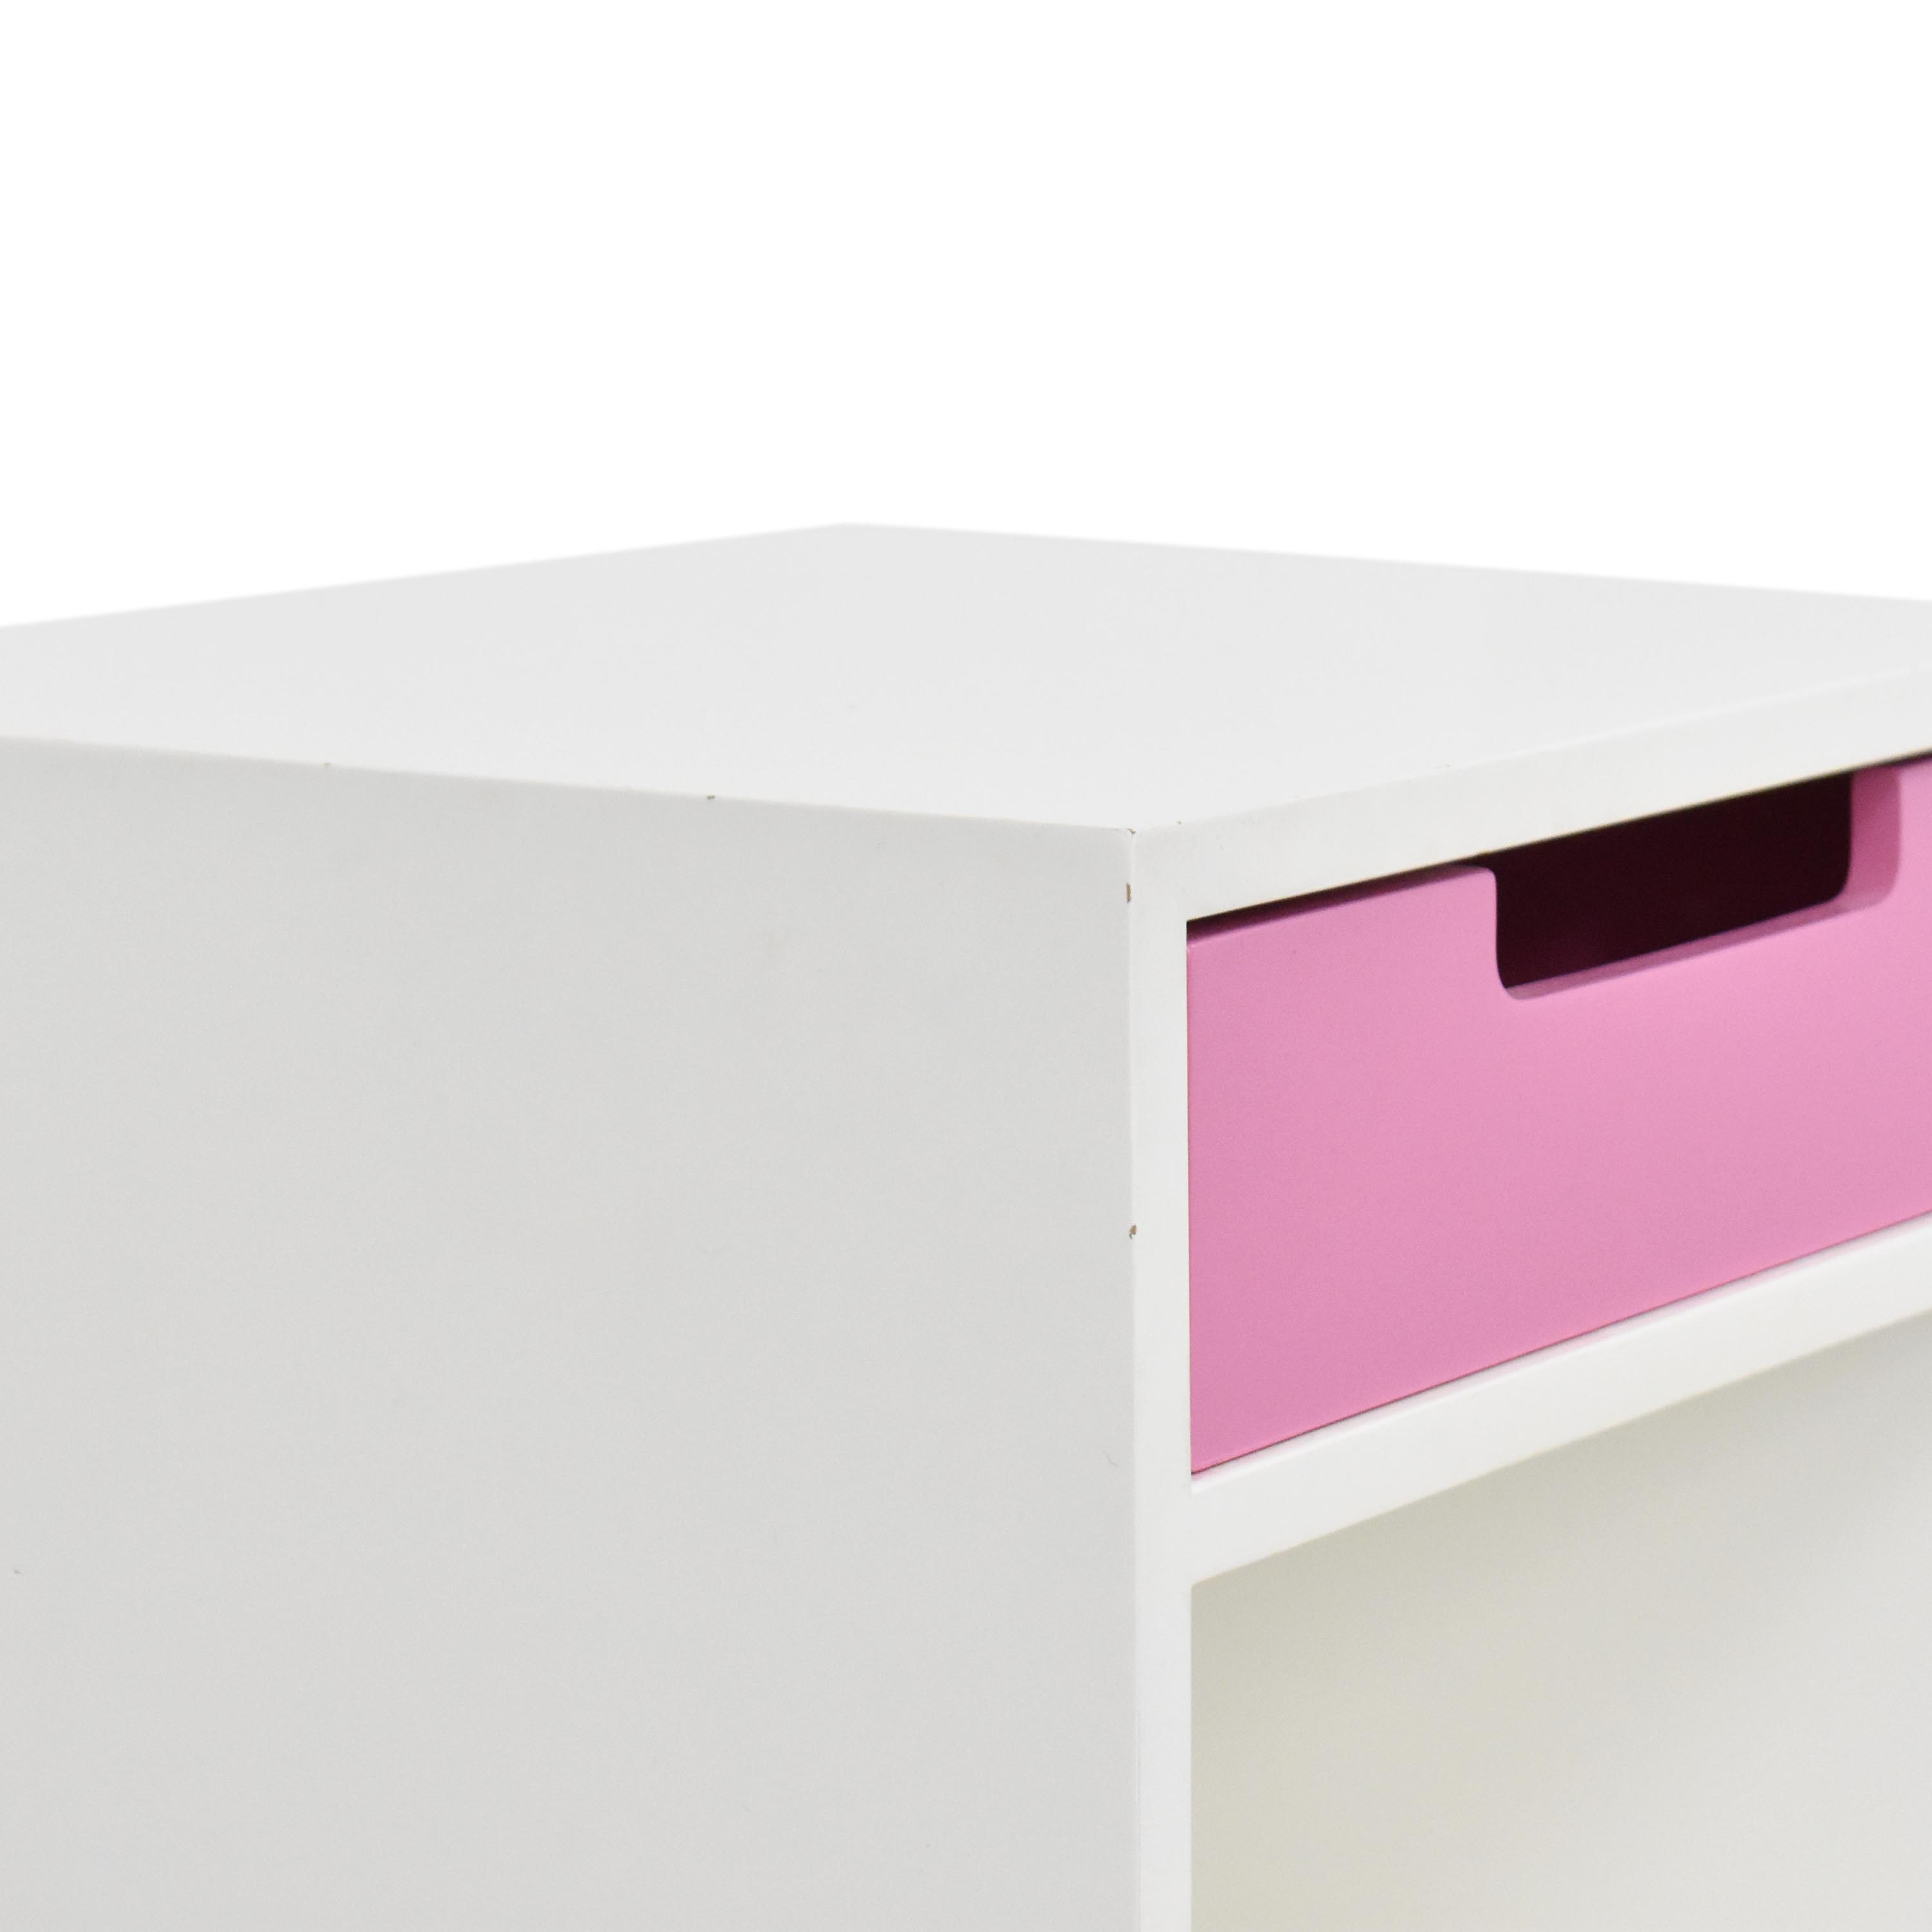 ducduc ducduc Single Drawer Nightstand white and pink